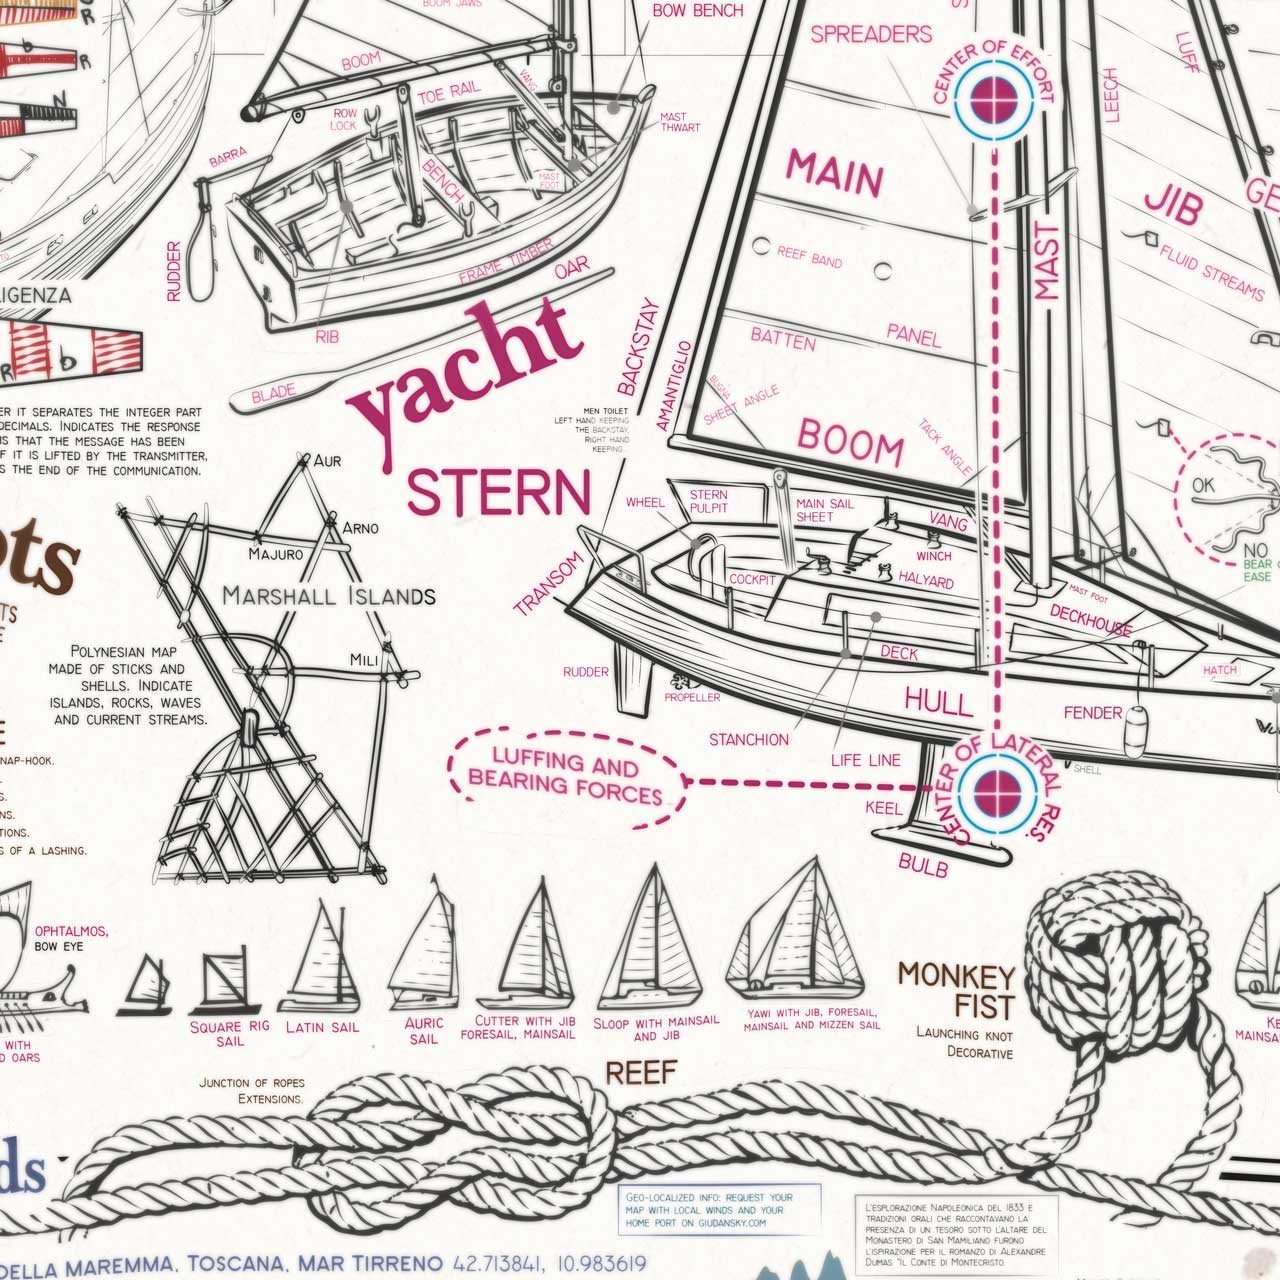 All the sailing in a poster infographic